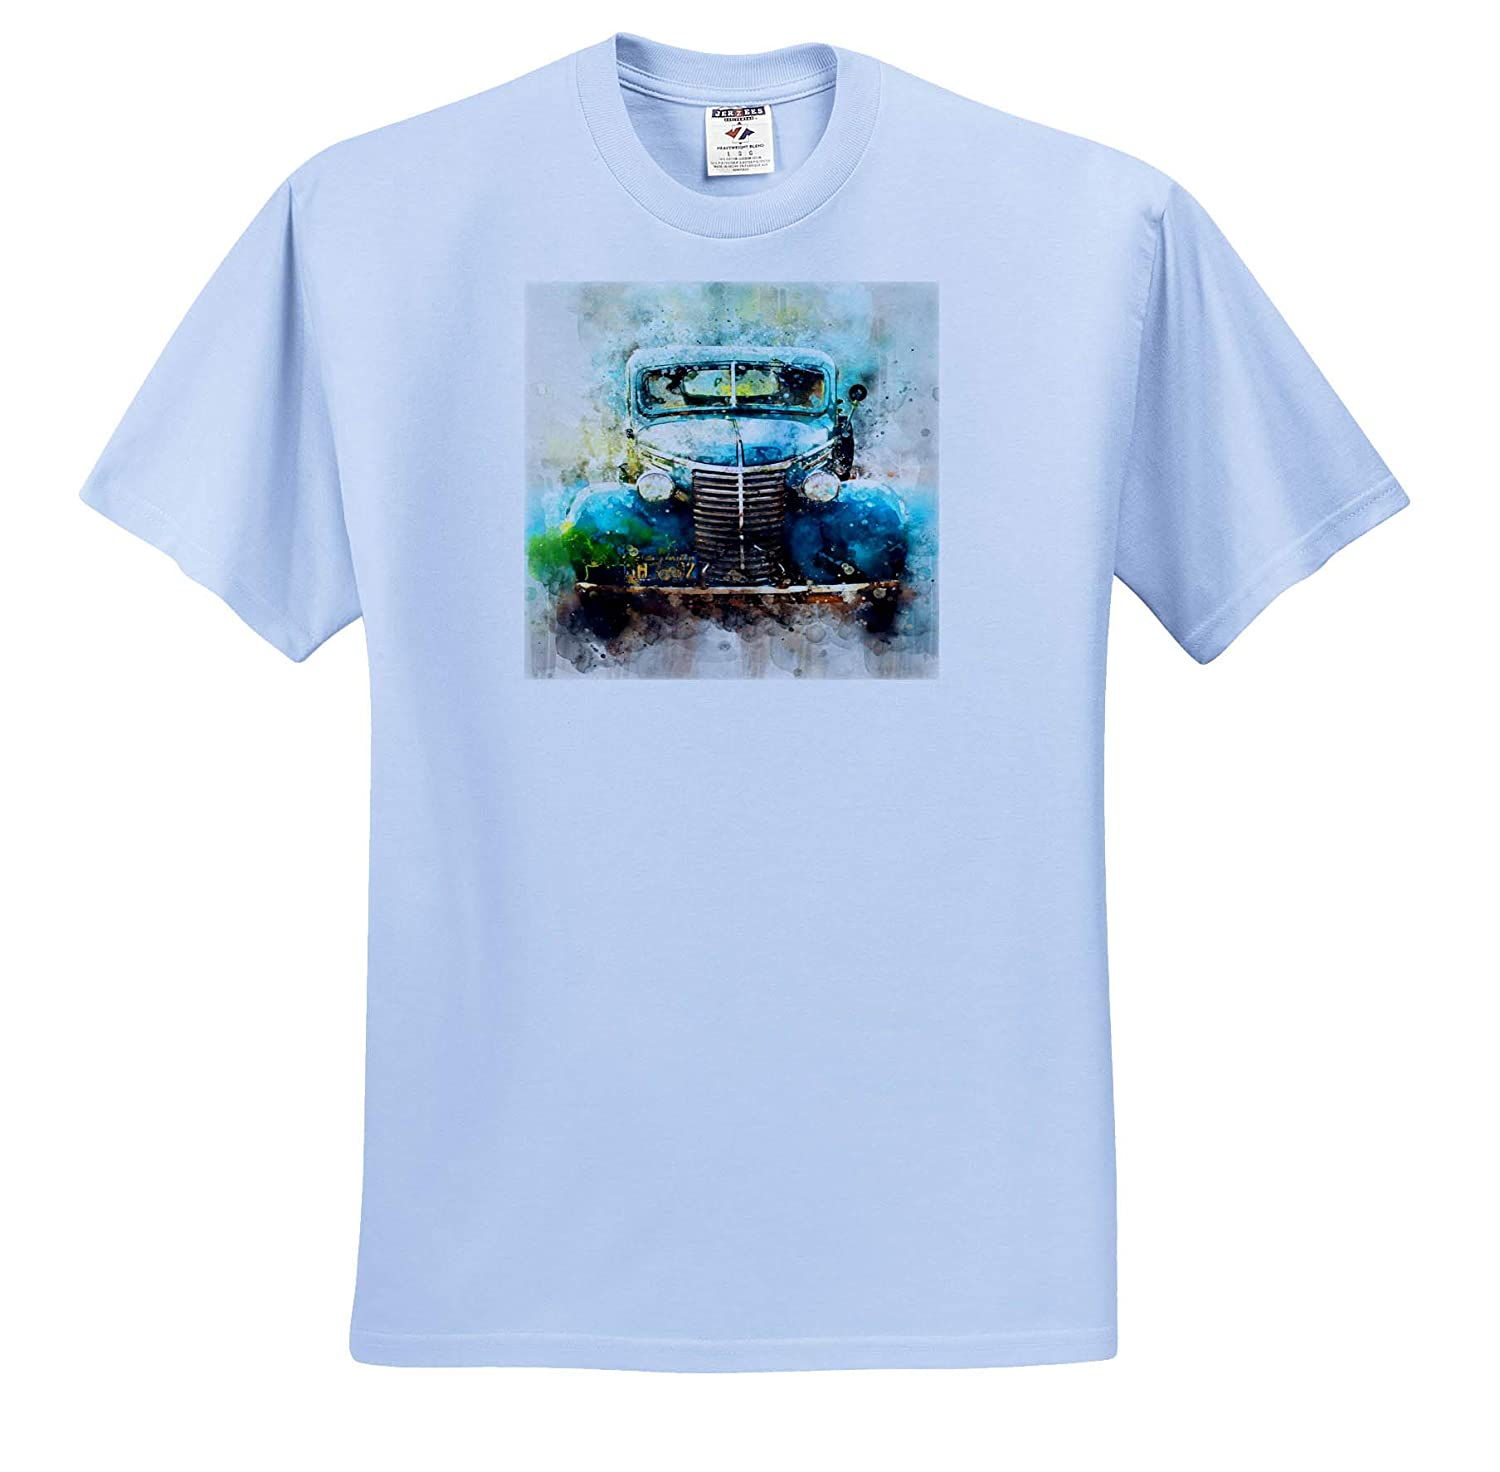 Image of Antique Car in Turquoise Watercolor 3dRose Lens Art by Florene Watercolor Art T-Shirts